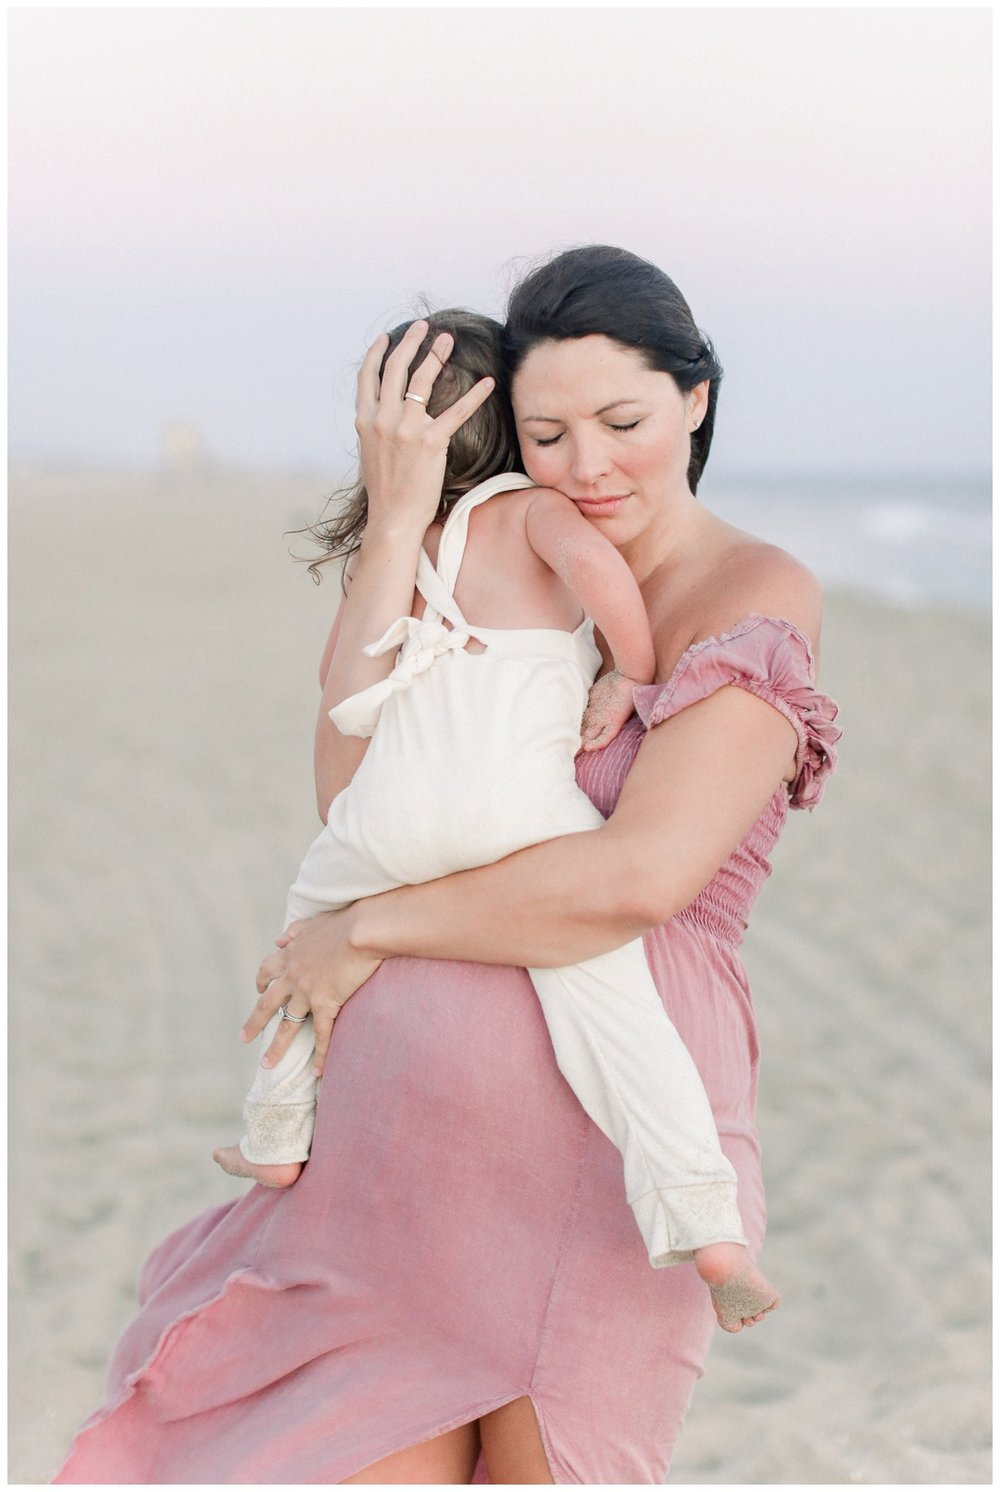 Newport_Beach_Maternity_Photographer_Newport_Beach_Newborn_Photography_Orange_County_Newborn_Photographer_Cori_Kleckner_Photography_Orange_County_in-home_Photography__2146.jpg